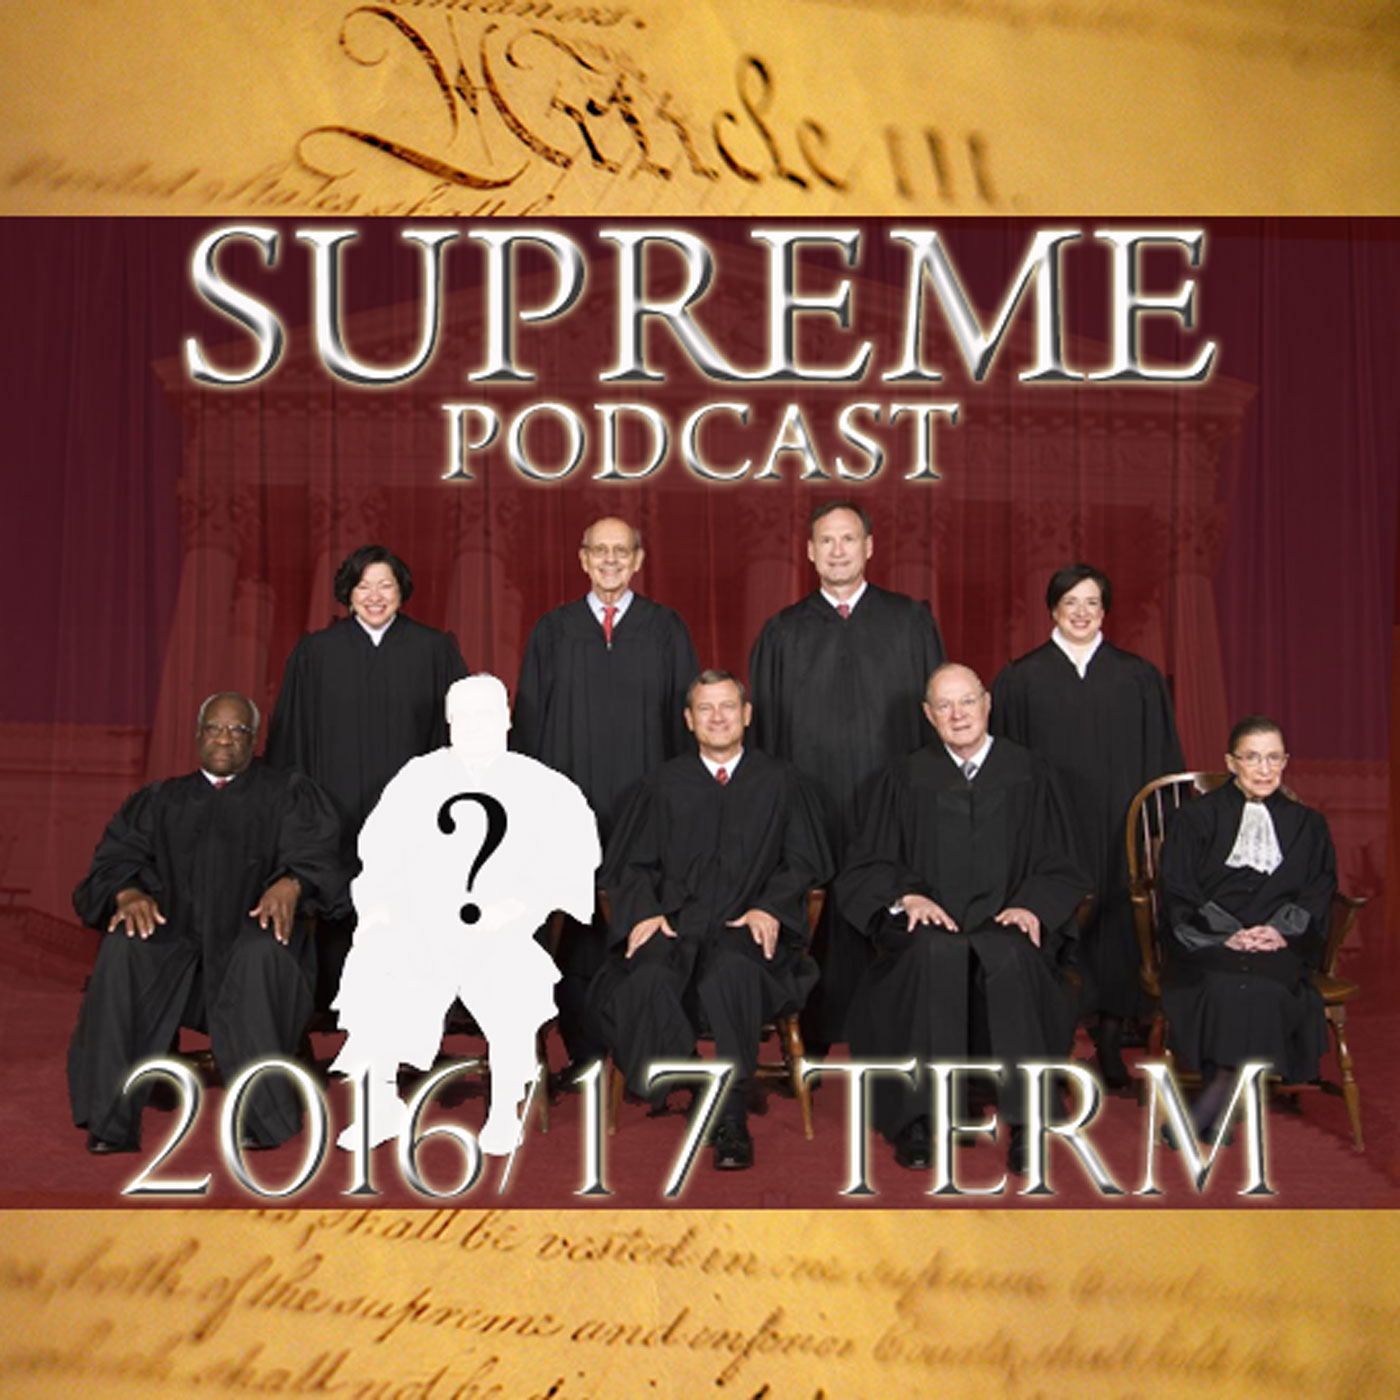 Supreme Podcast